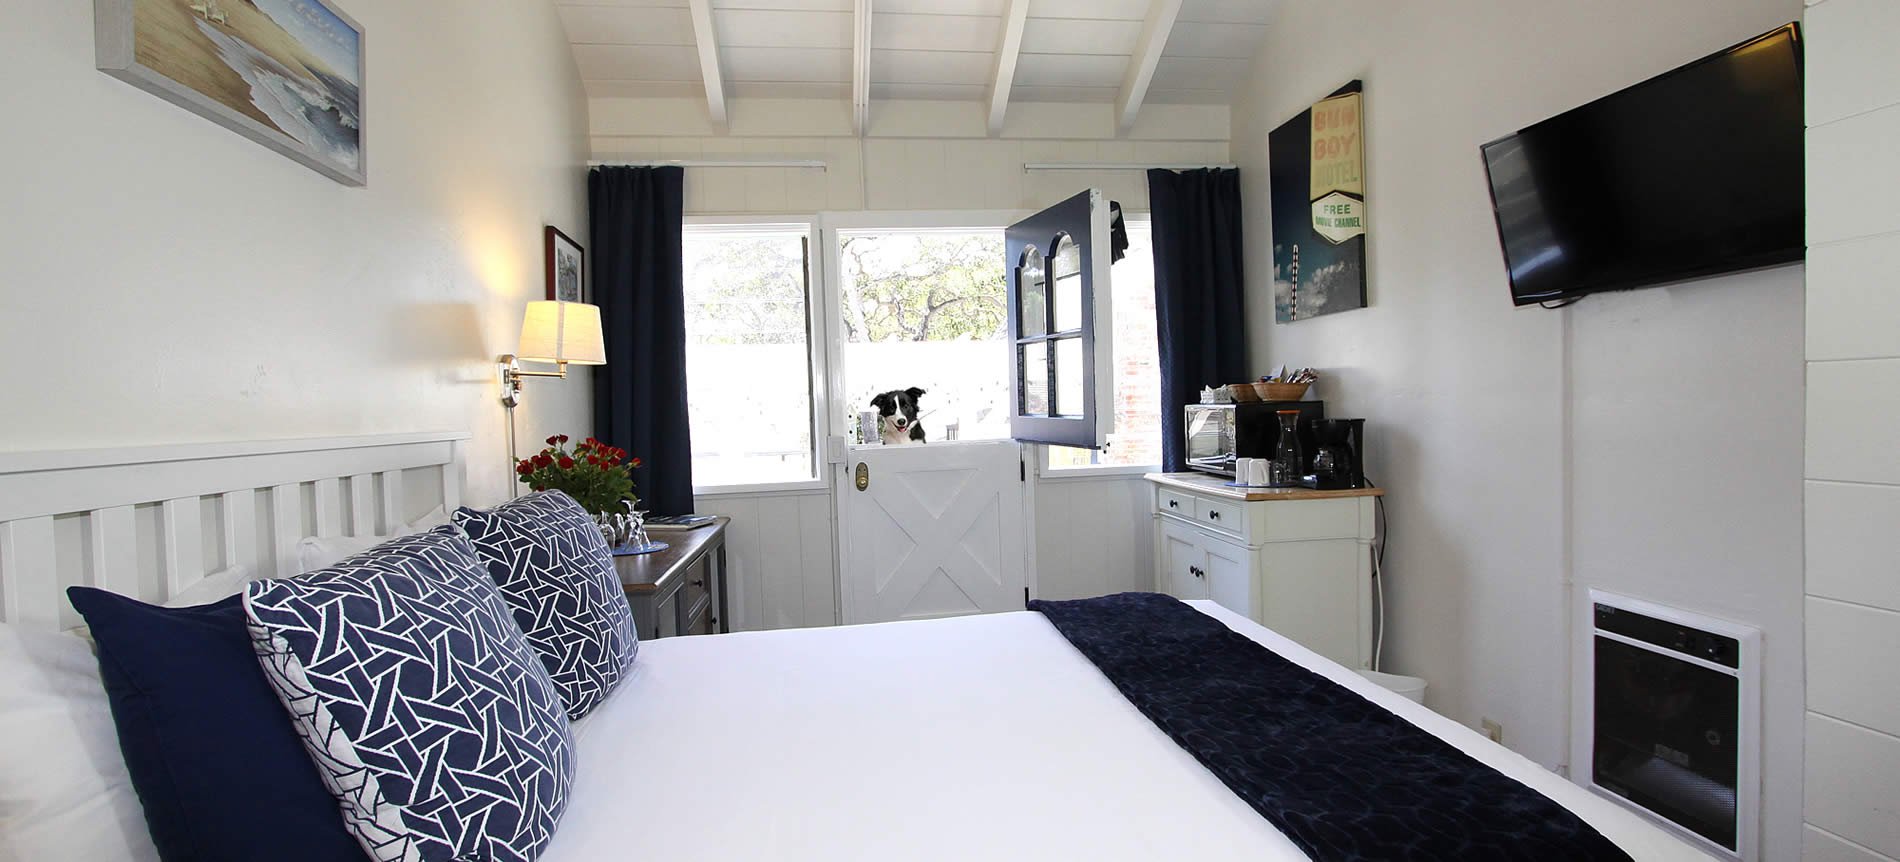 pet friendly carmel hotel - guest room with bed, TV and dog at door